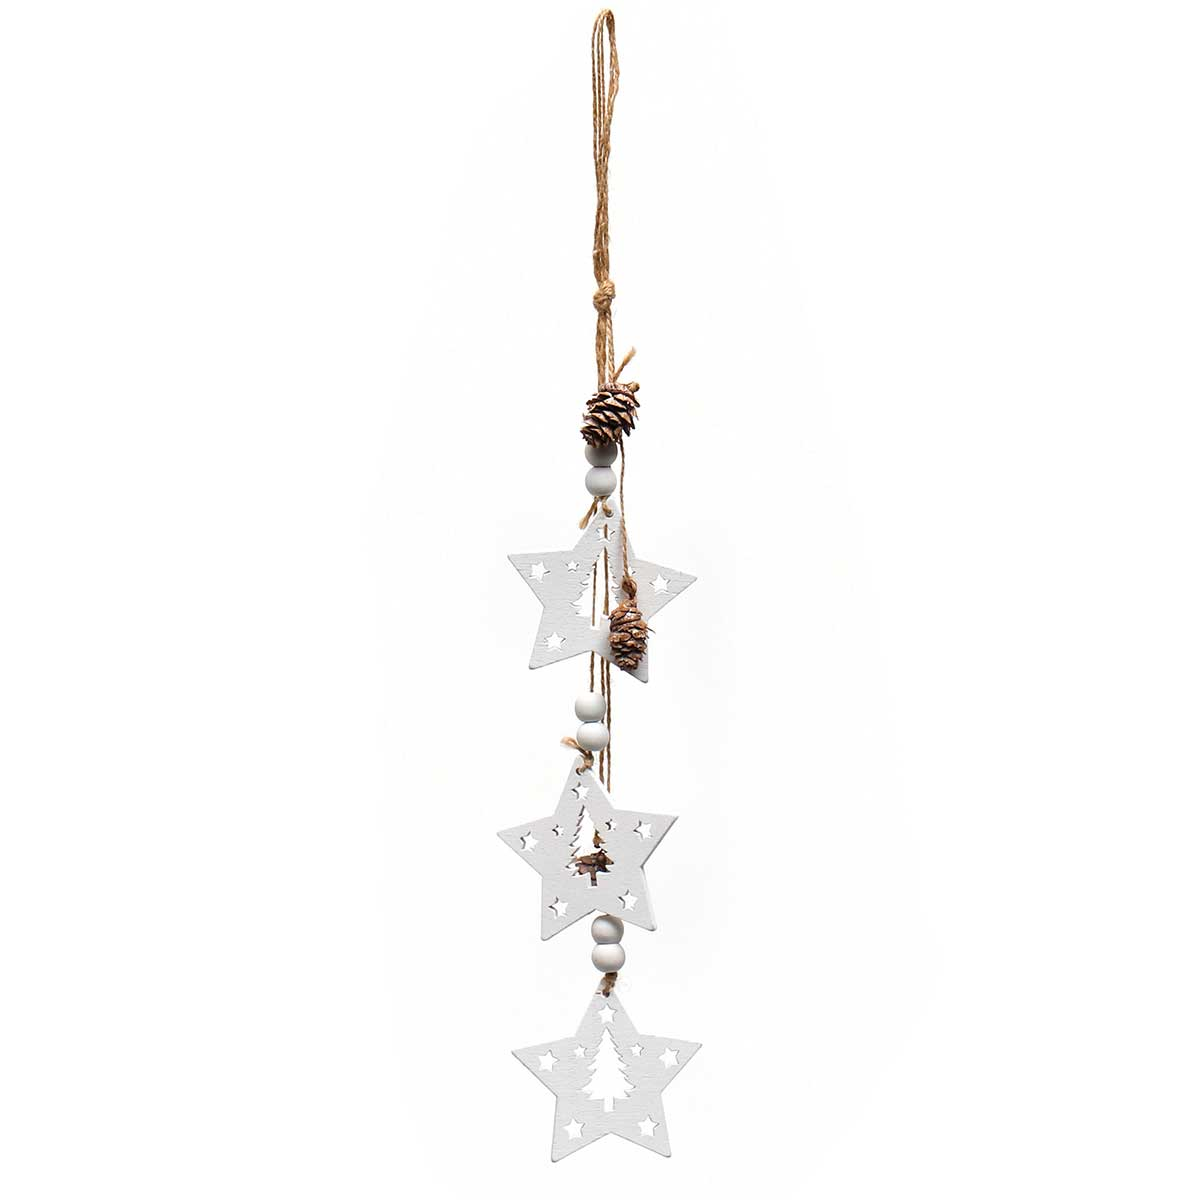 WHITE WOOD STAR X3 DROP ORNAMENT AMENT